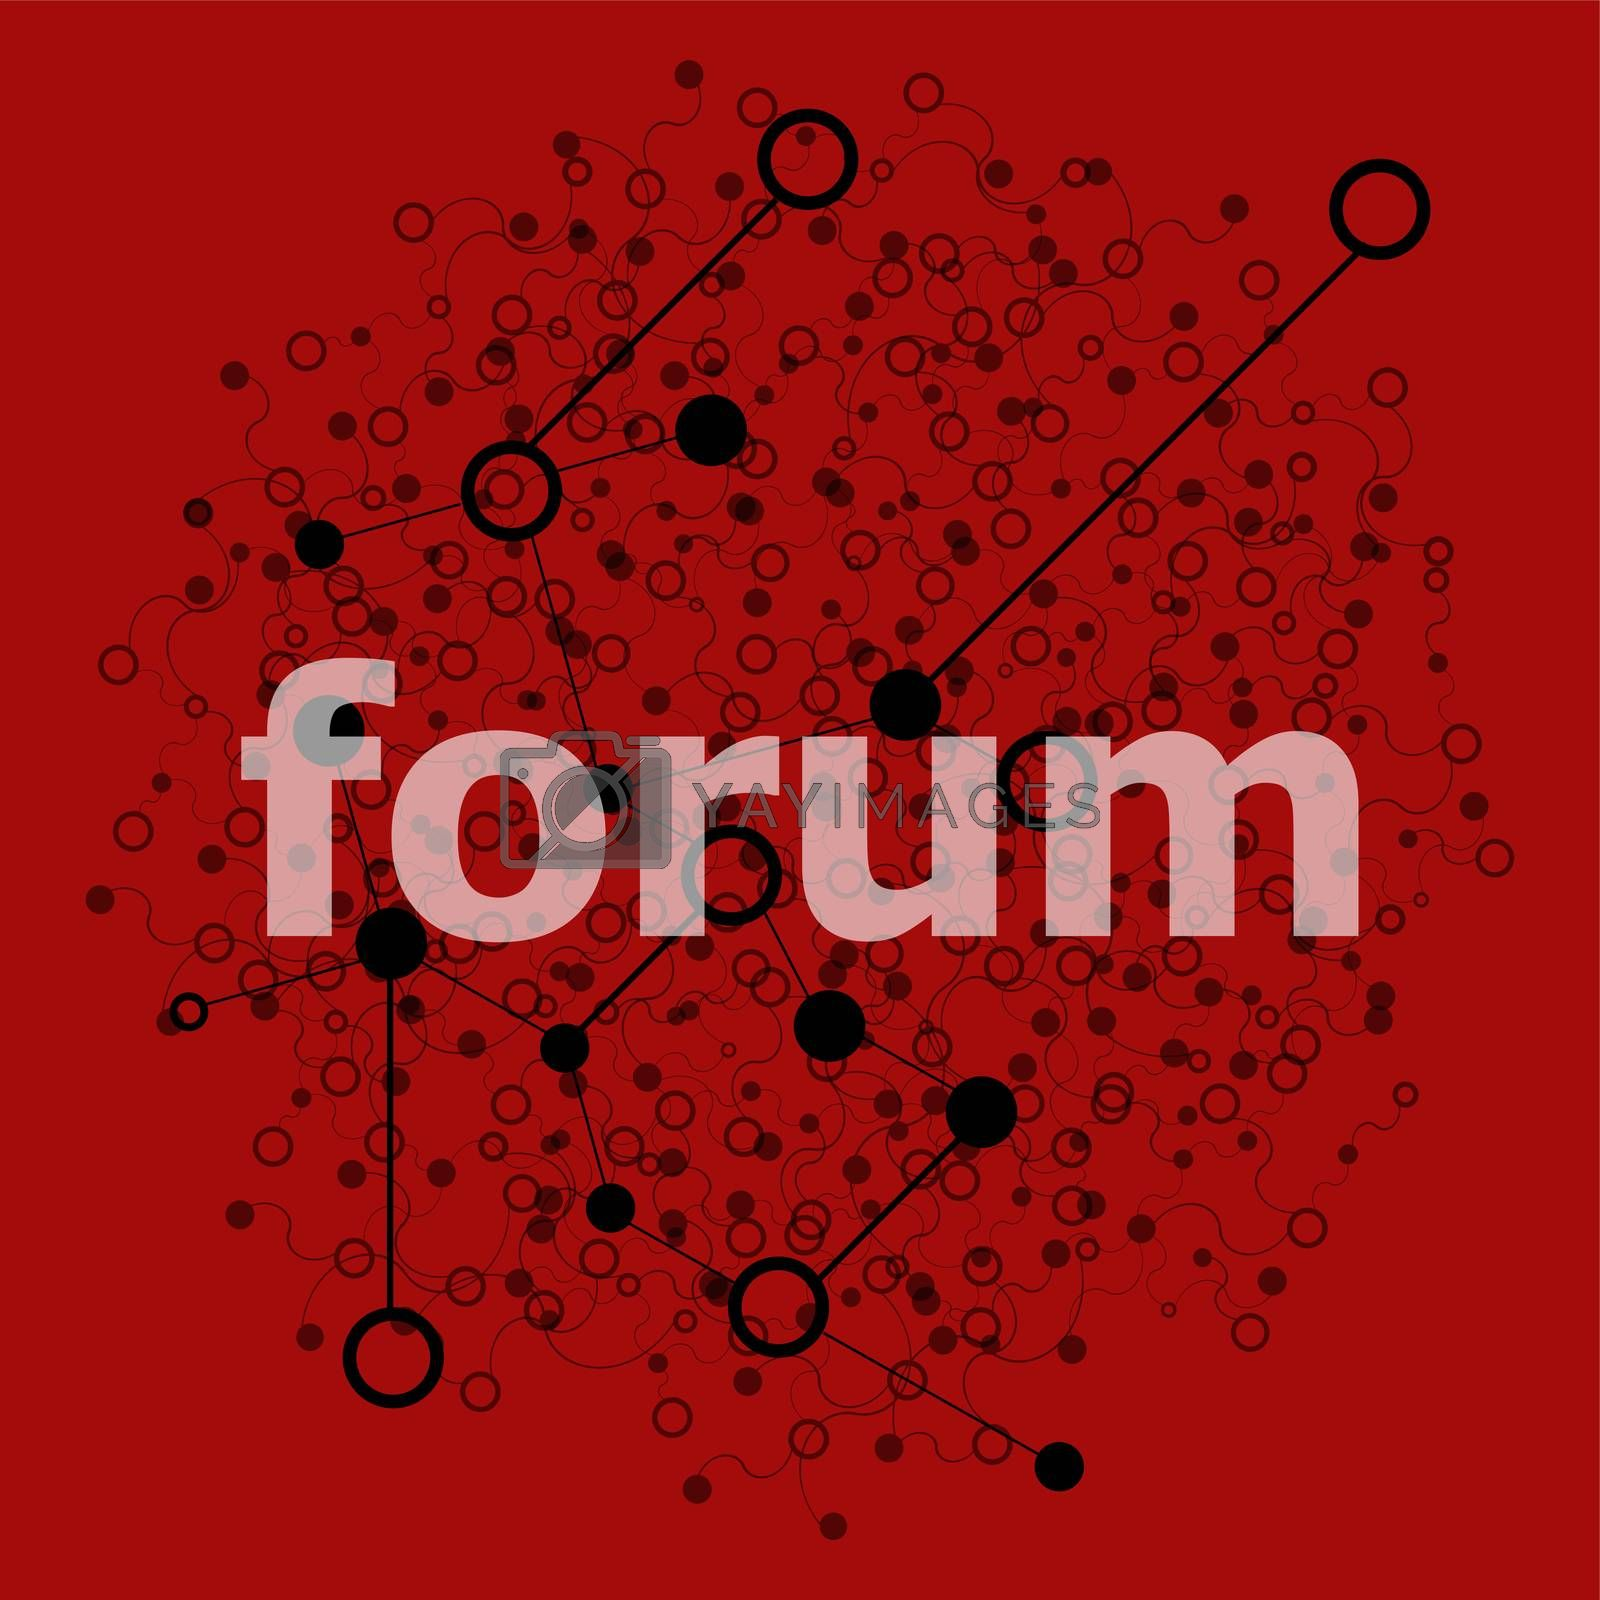 Text Forum. Web design concept . Abstract geometric background with lines, circles and dots